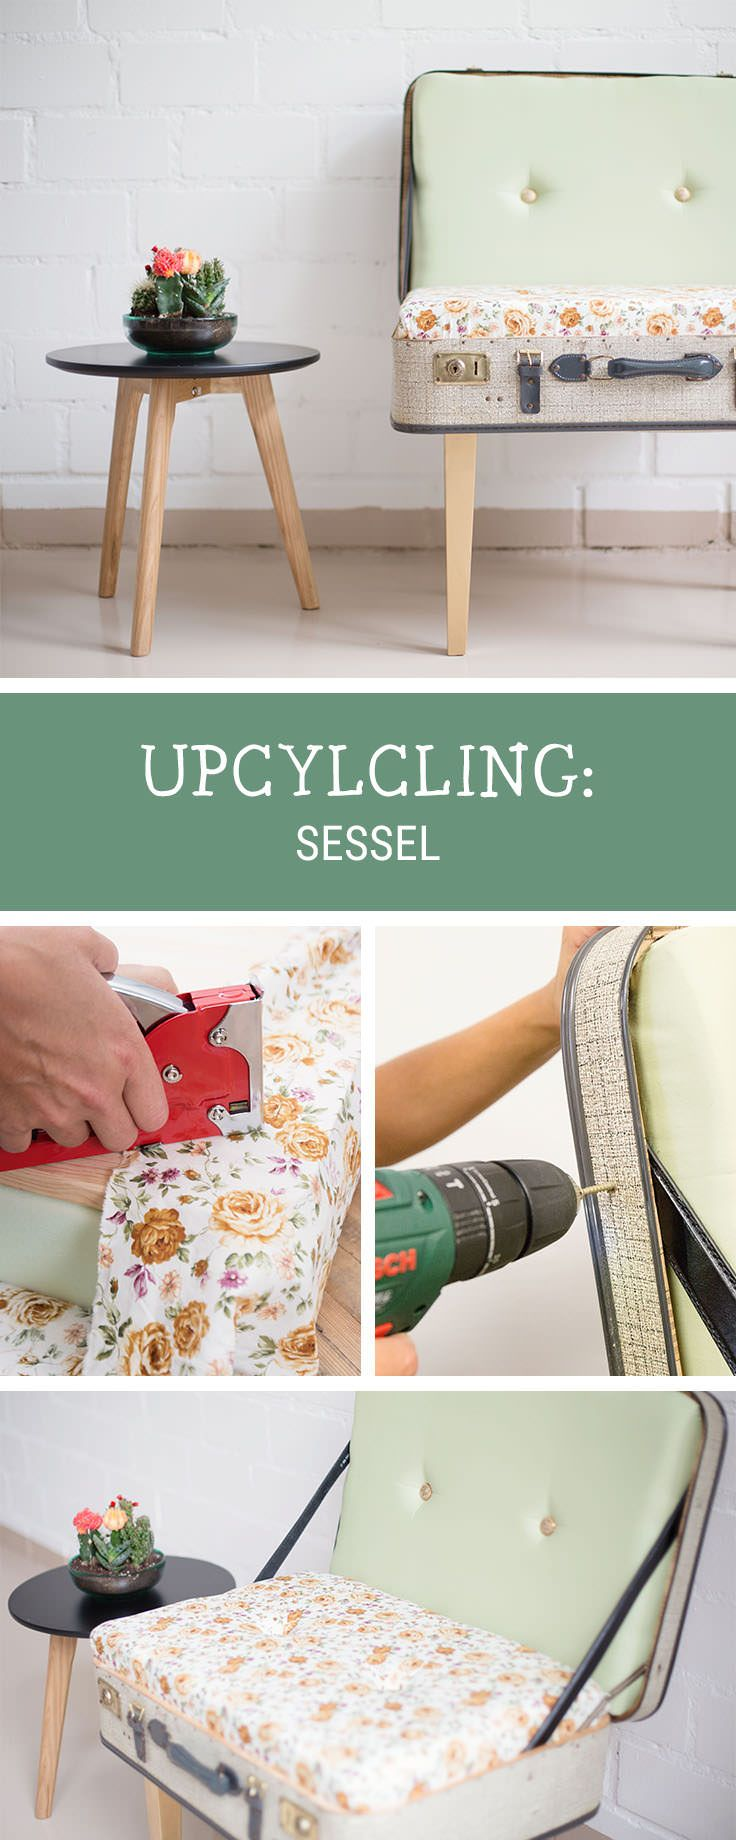 Upcycling Sessel Sessel Aus Altem Koffer Bauen Upcycling Idee Upcycling